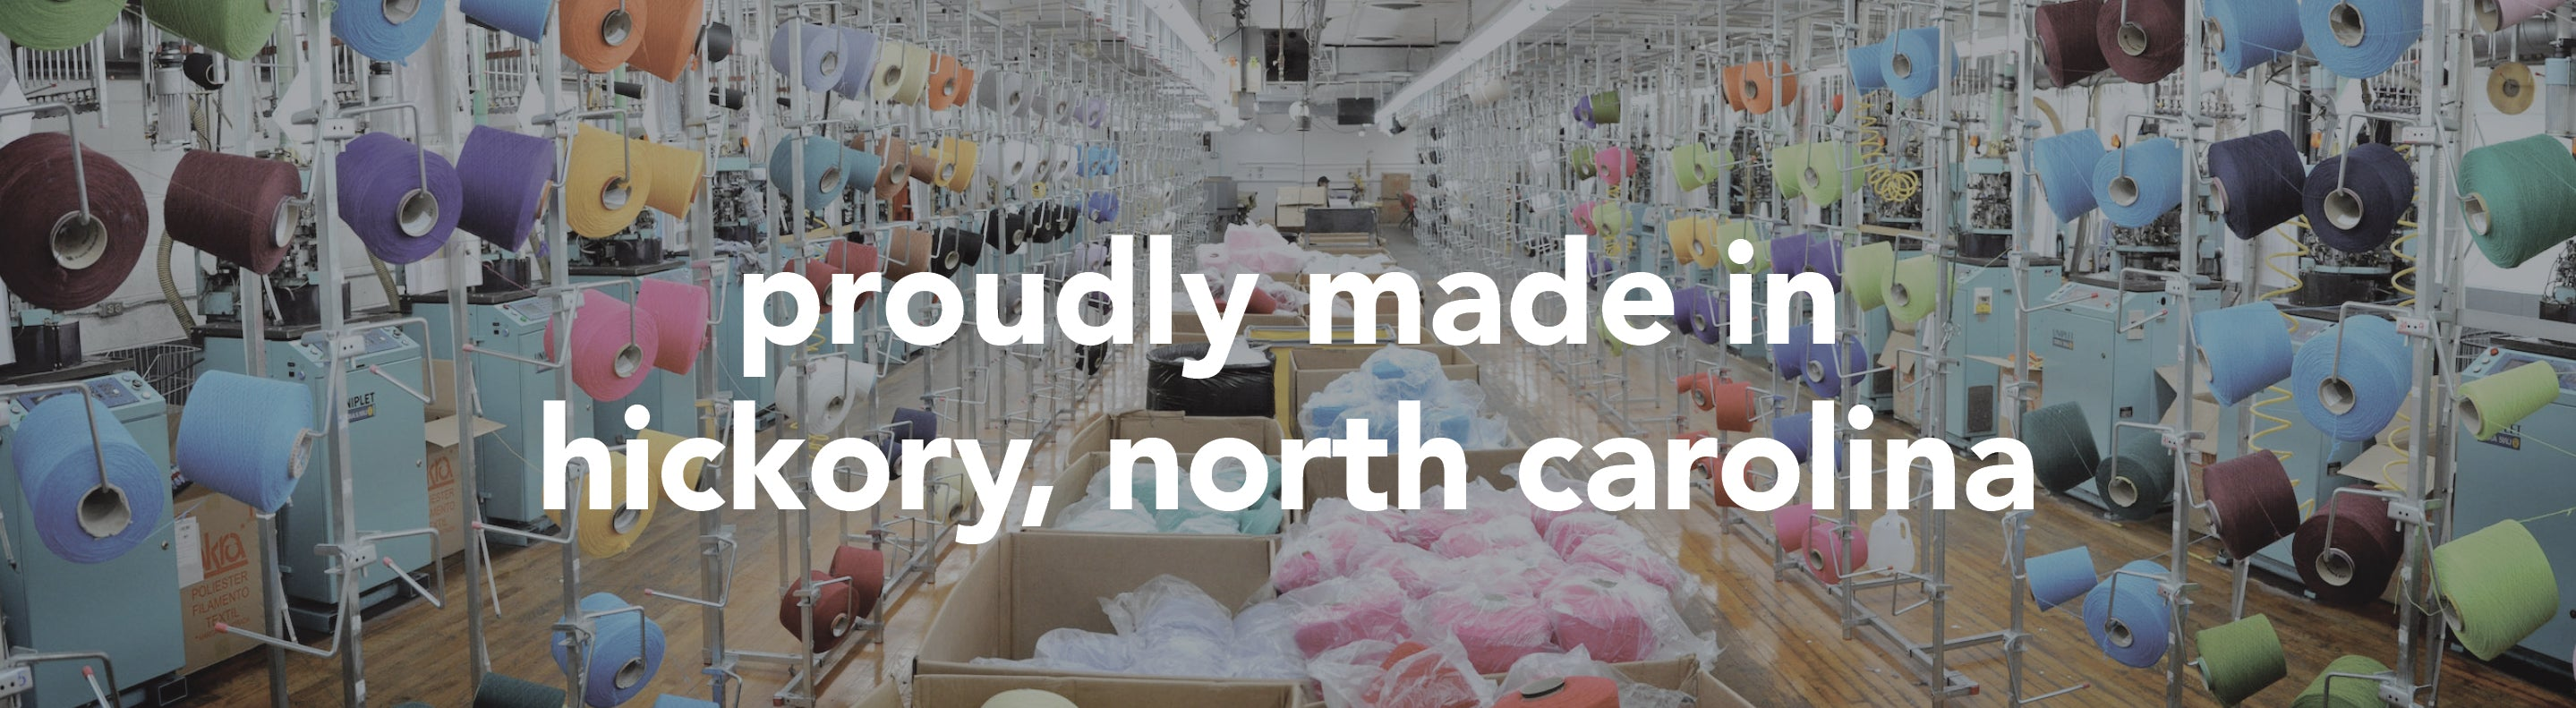 made in hickory, north carolina